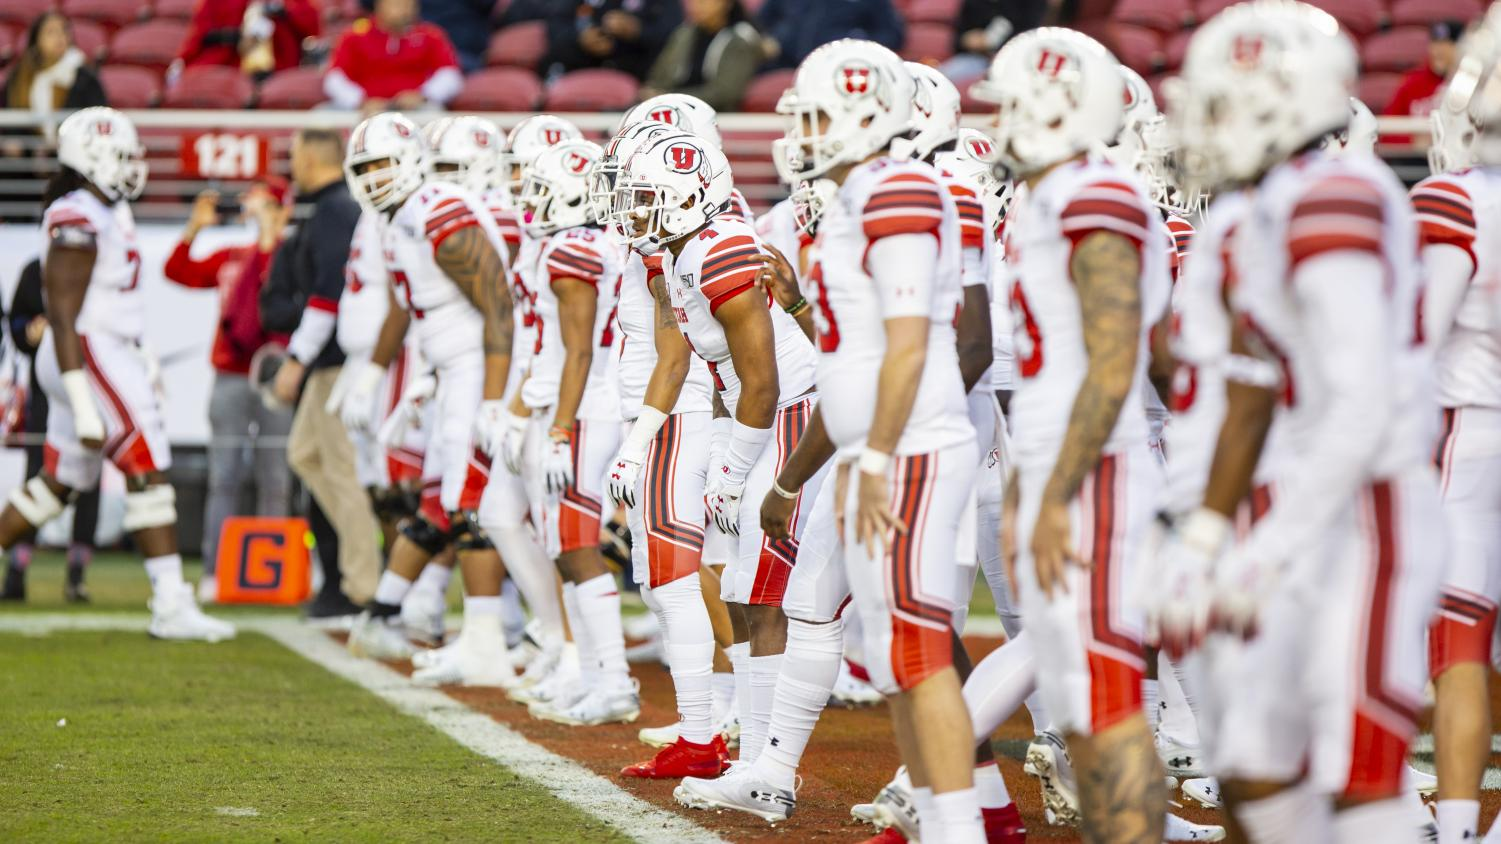 The University of Utah Football Team warms up prior to the start of the game in the Pac-12 Championship Game vs. University of Oregon at Levi's Stadium in Santa Clara, CA on Friday, Dec. 6, 2019.(Photo by Curtis Lin | Daily Utah Chronicle)